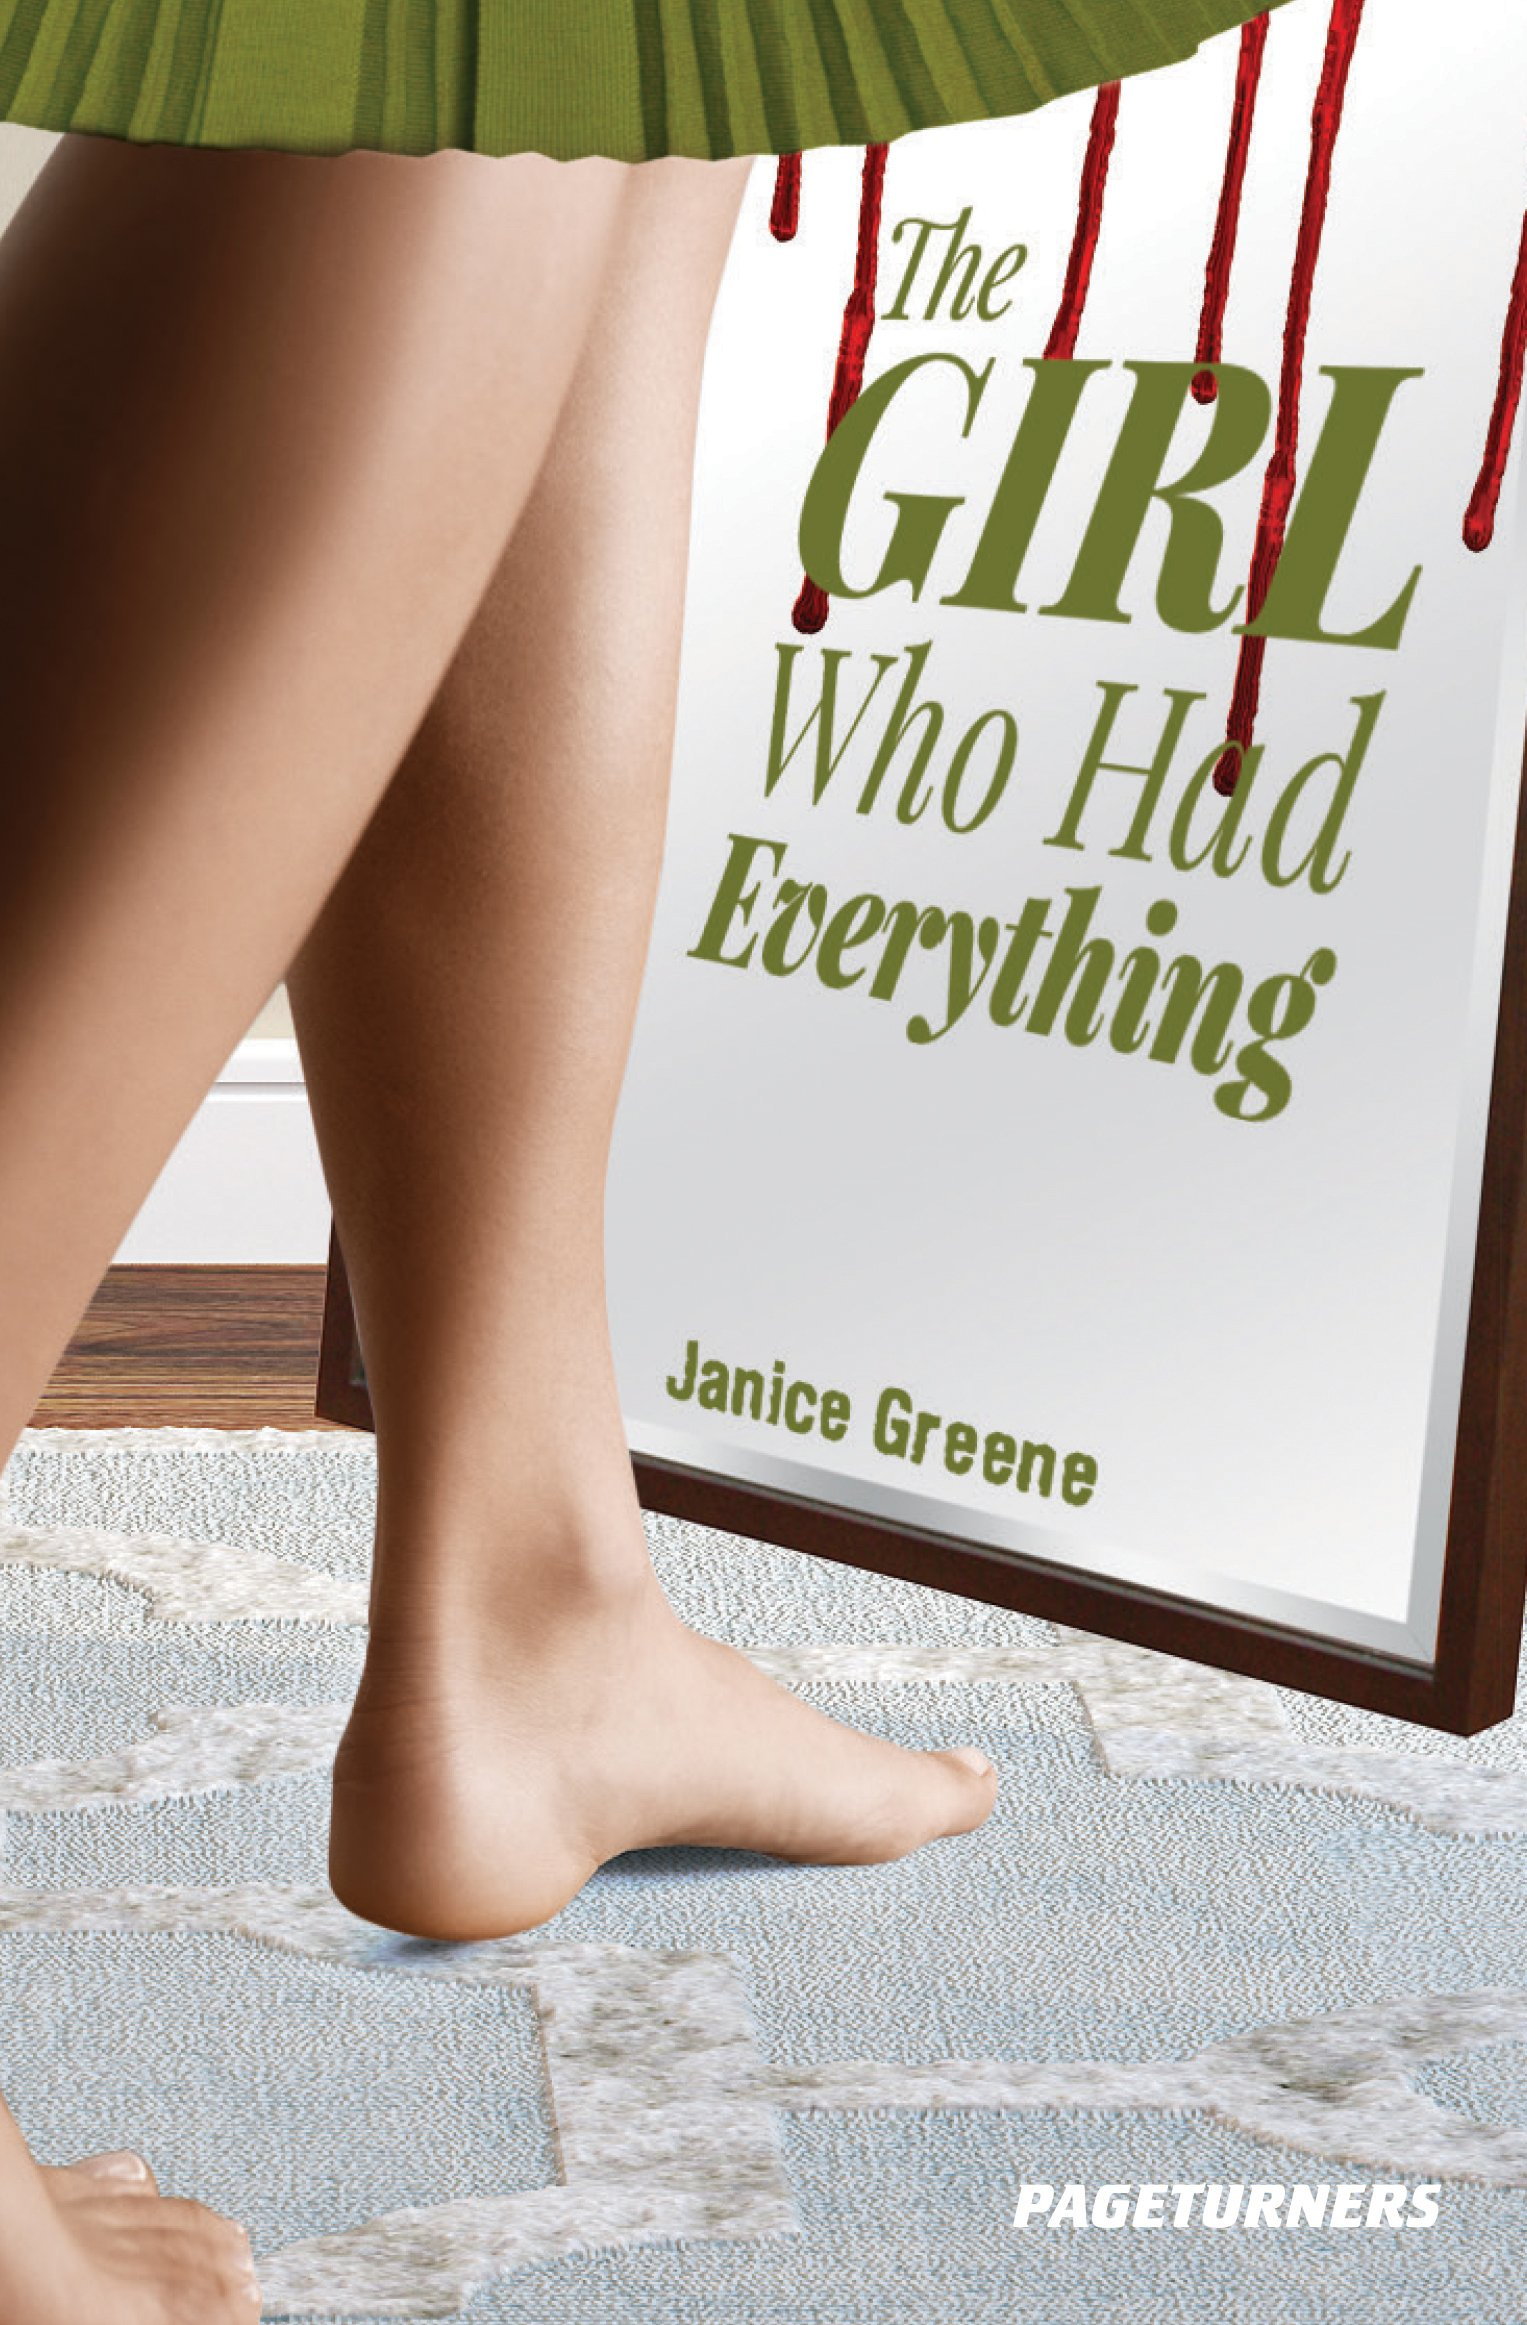 The Girl Who Had Everything (Suspense) (Pageturners) ebook